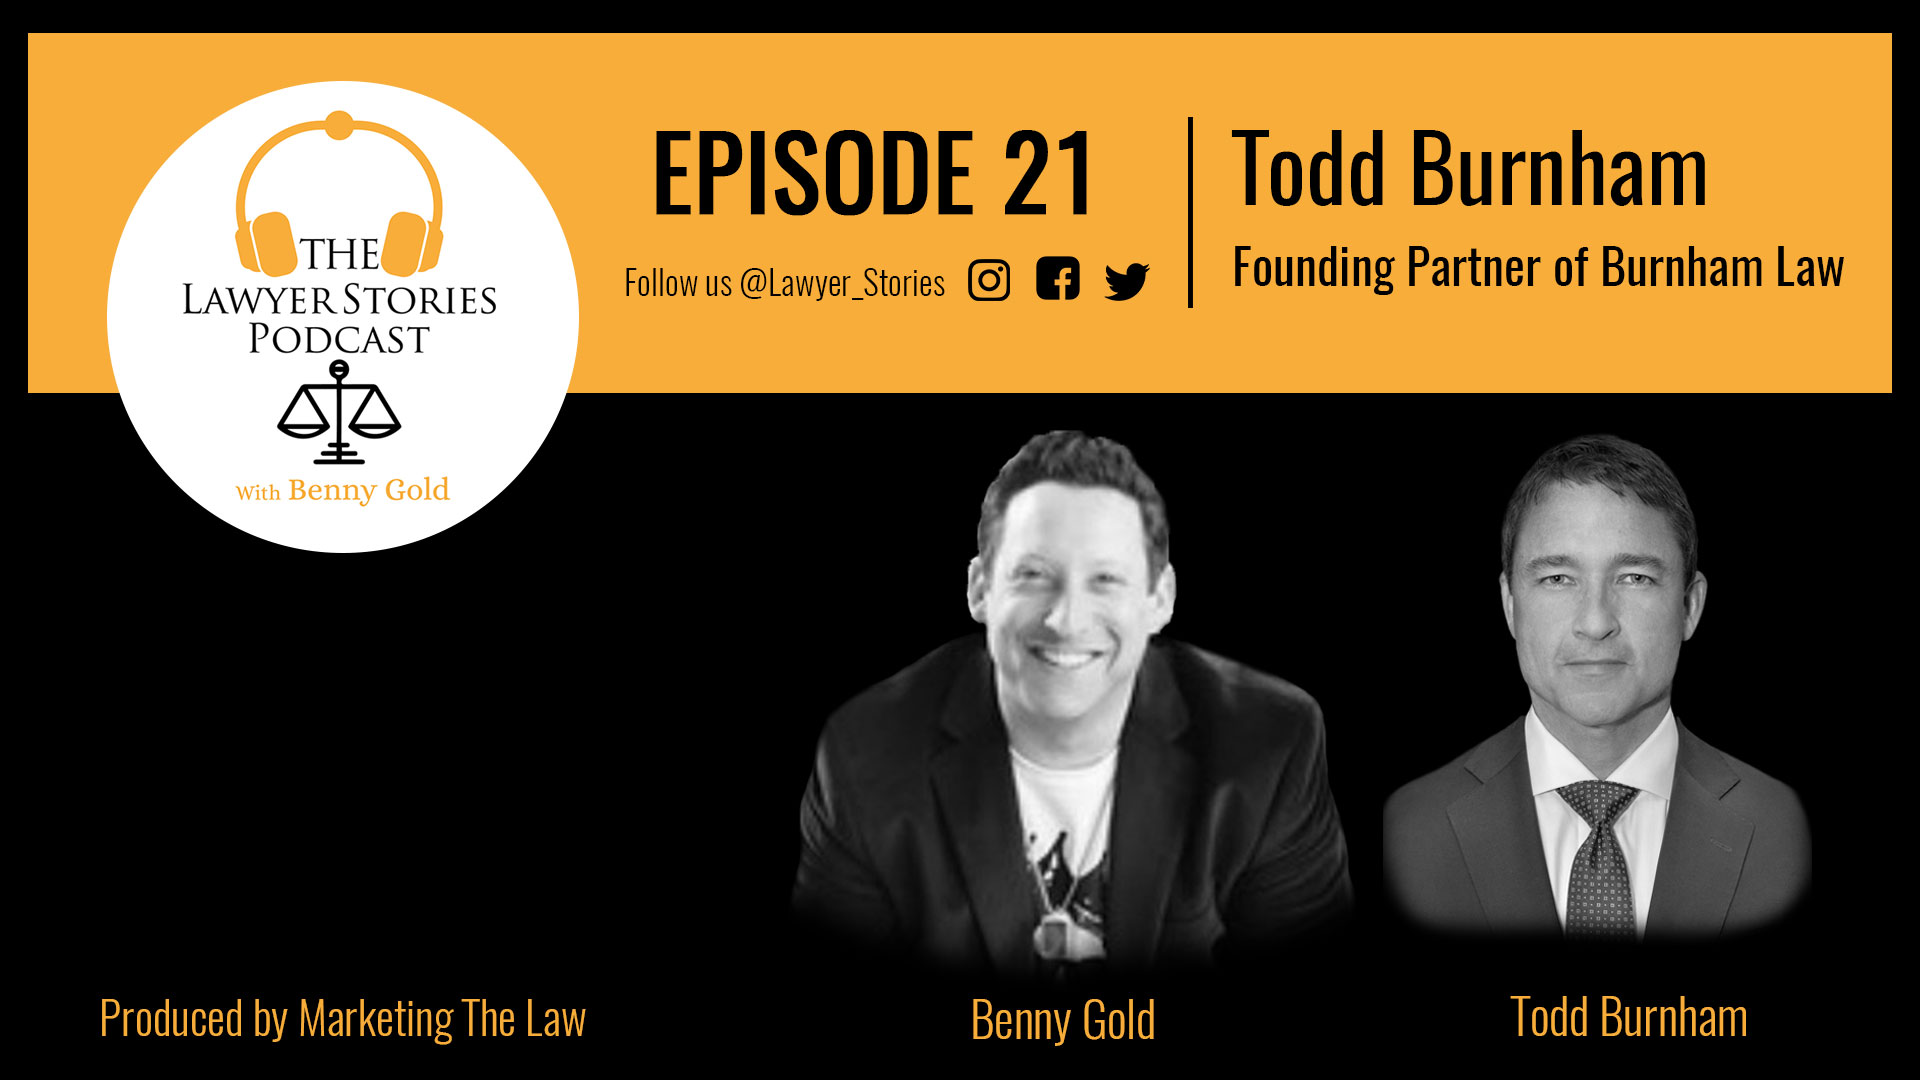 The Lawyer Stories Podcast Episode 21, featuring Todd Burnham, the Founding Partner of Burnham Law.